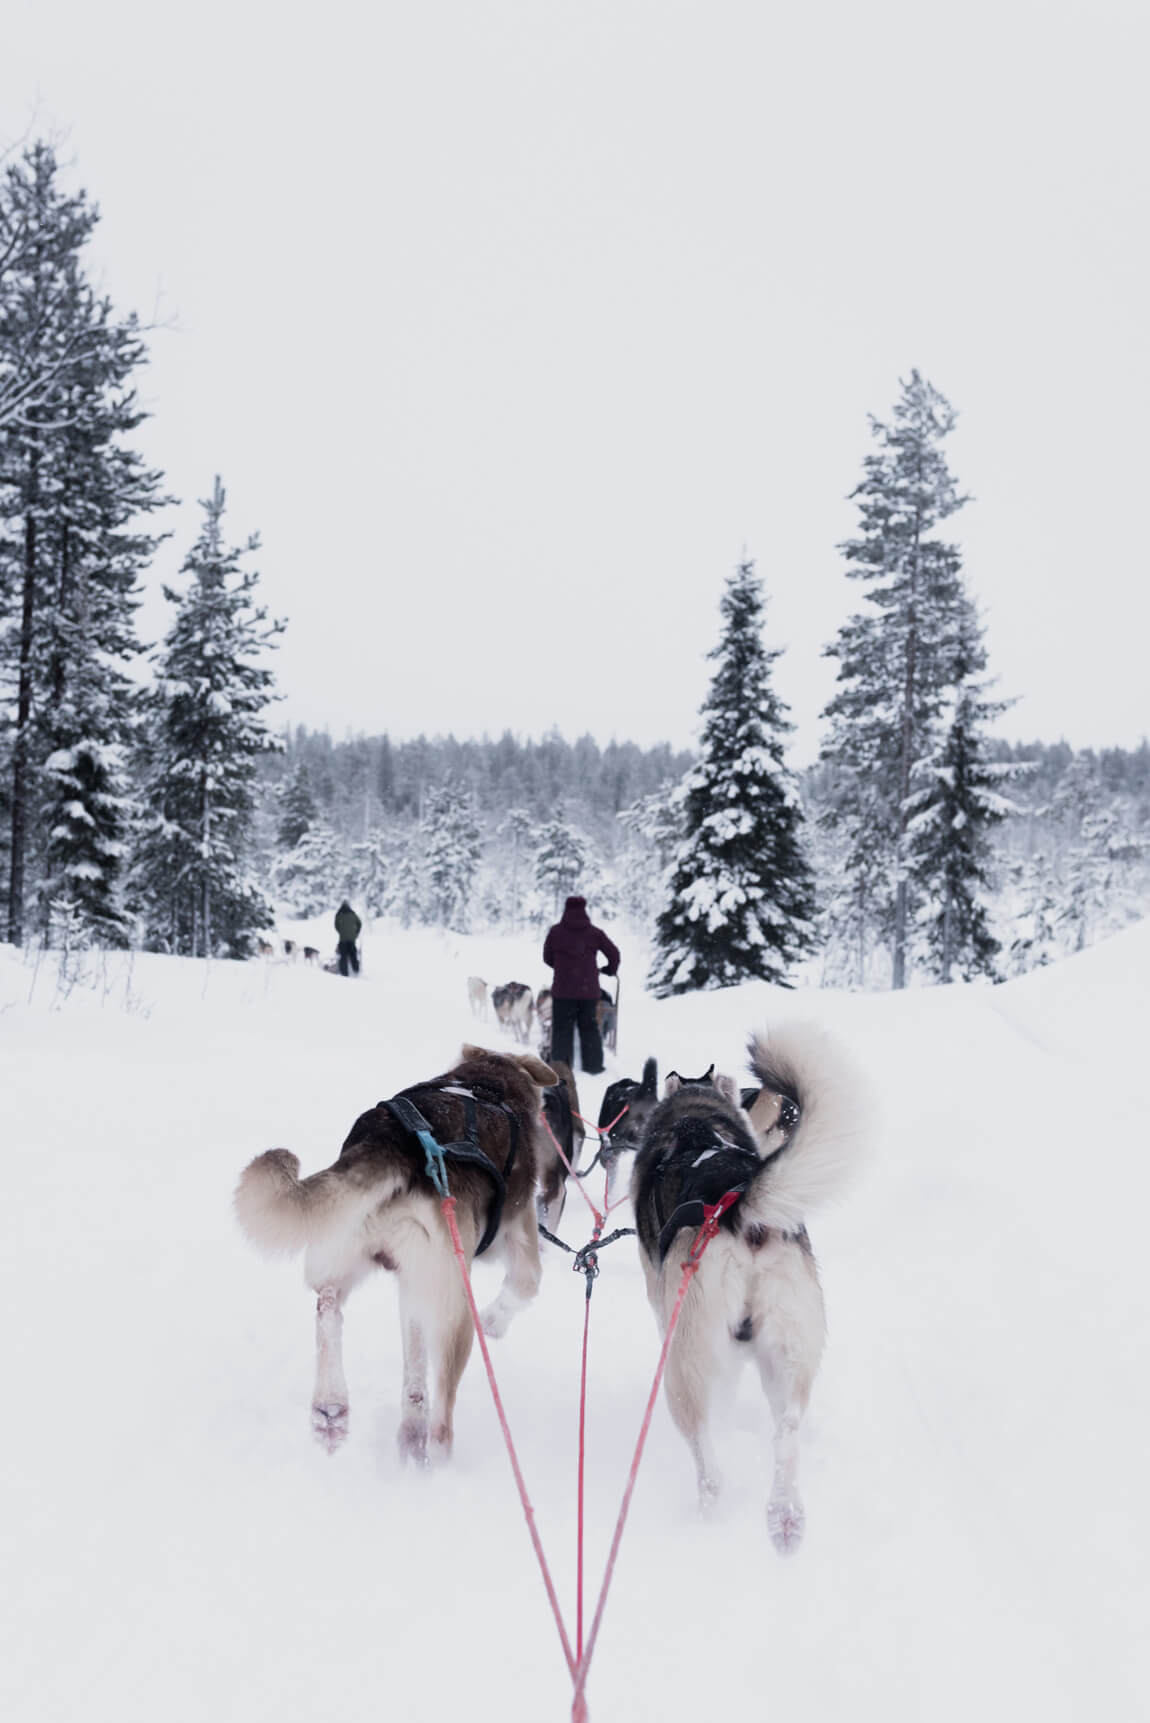 Husky rides in Finland. Pushing your body to extremes for wellbeing. Image by Darkroomsg on Unsplash.com.